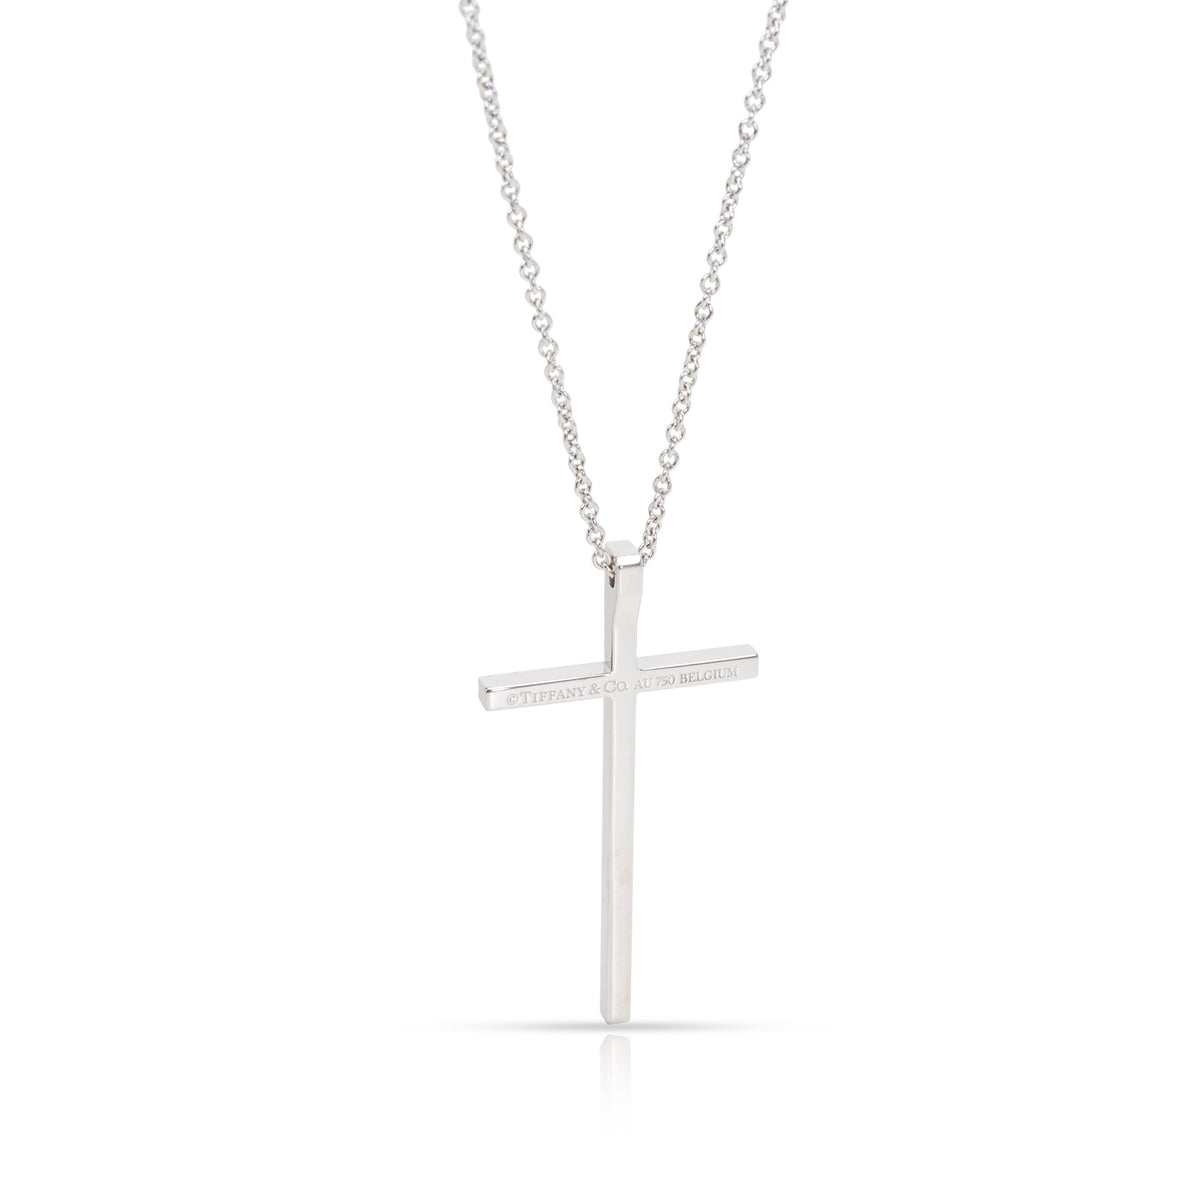 Tiffany & Co. Metro Cross Diamond Necklace in 18K White Gold 0.31 CTW